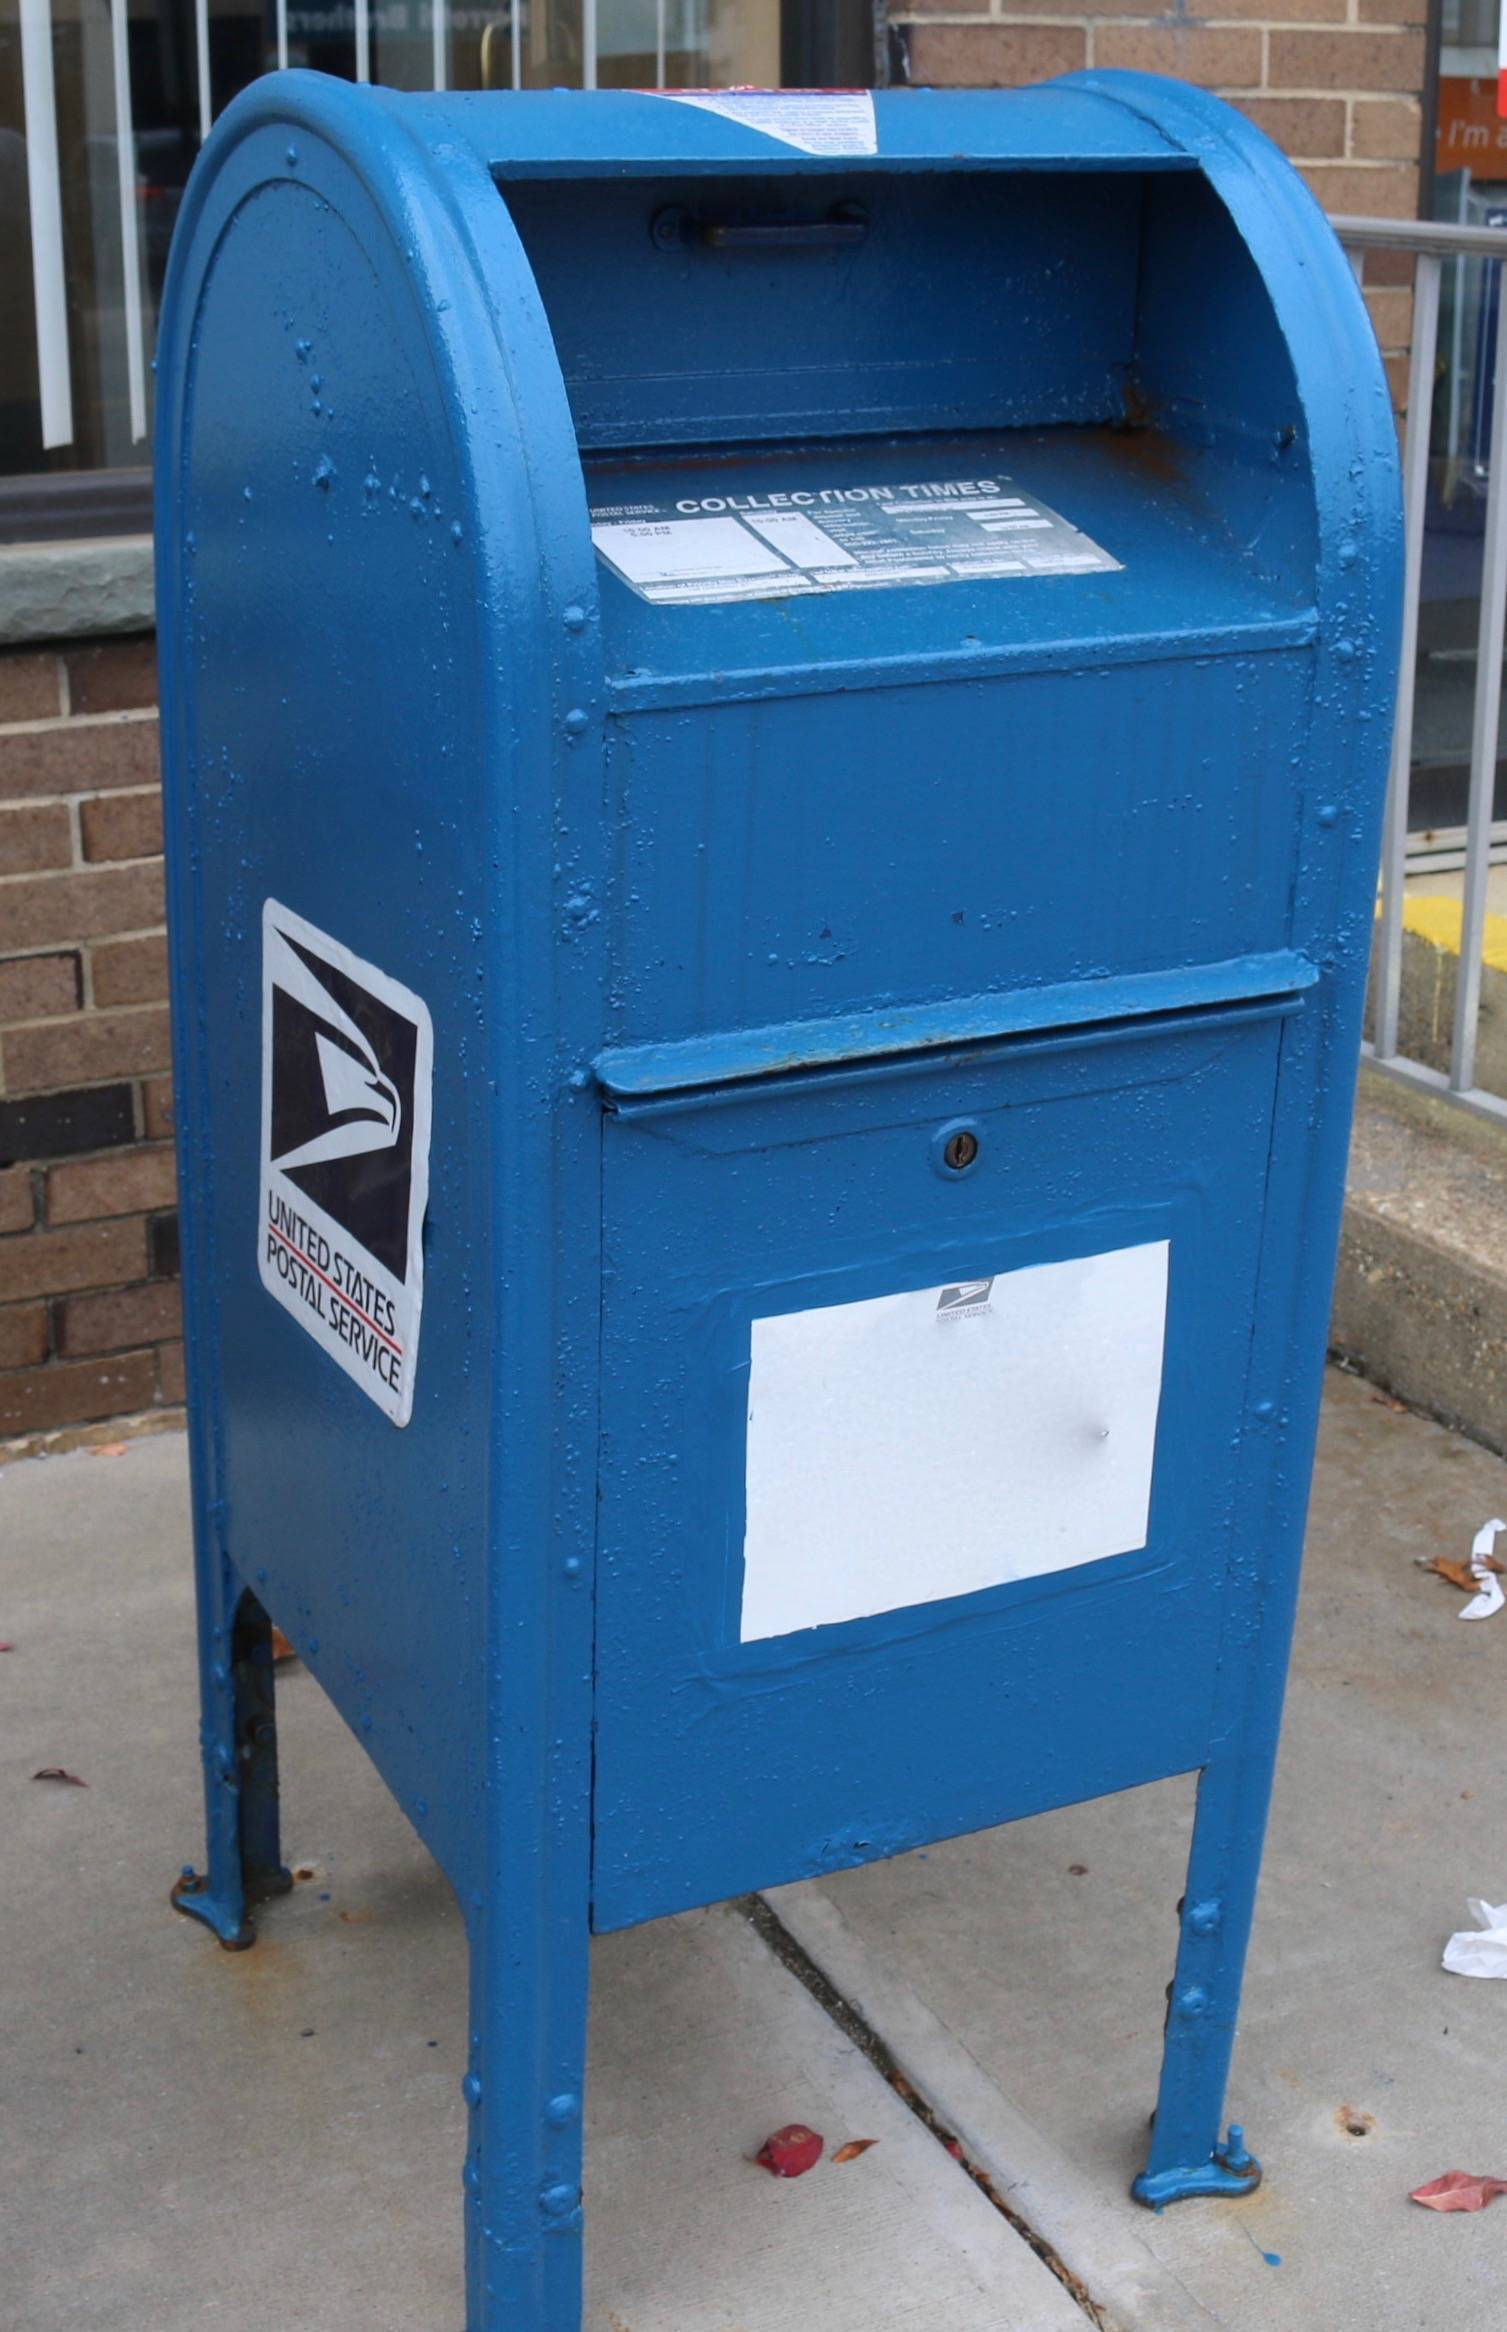 Union Police:  Tips to Avoid Mail Theft